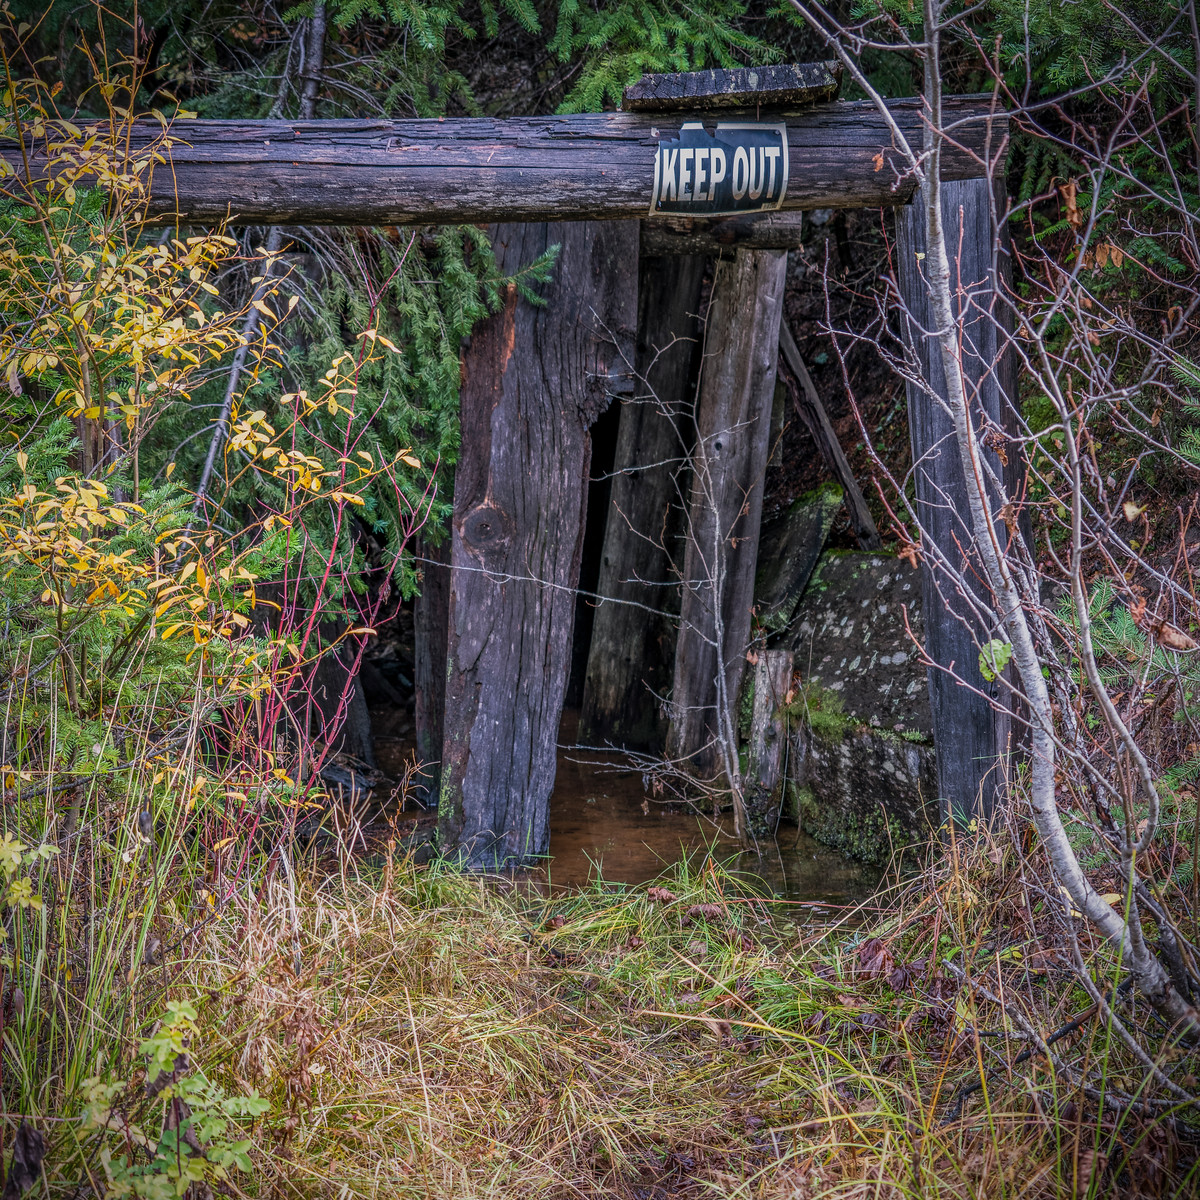 an abandoned gold mine.